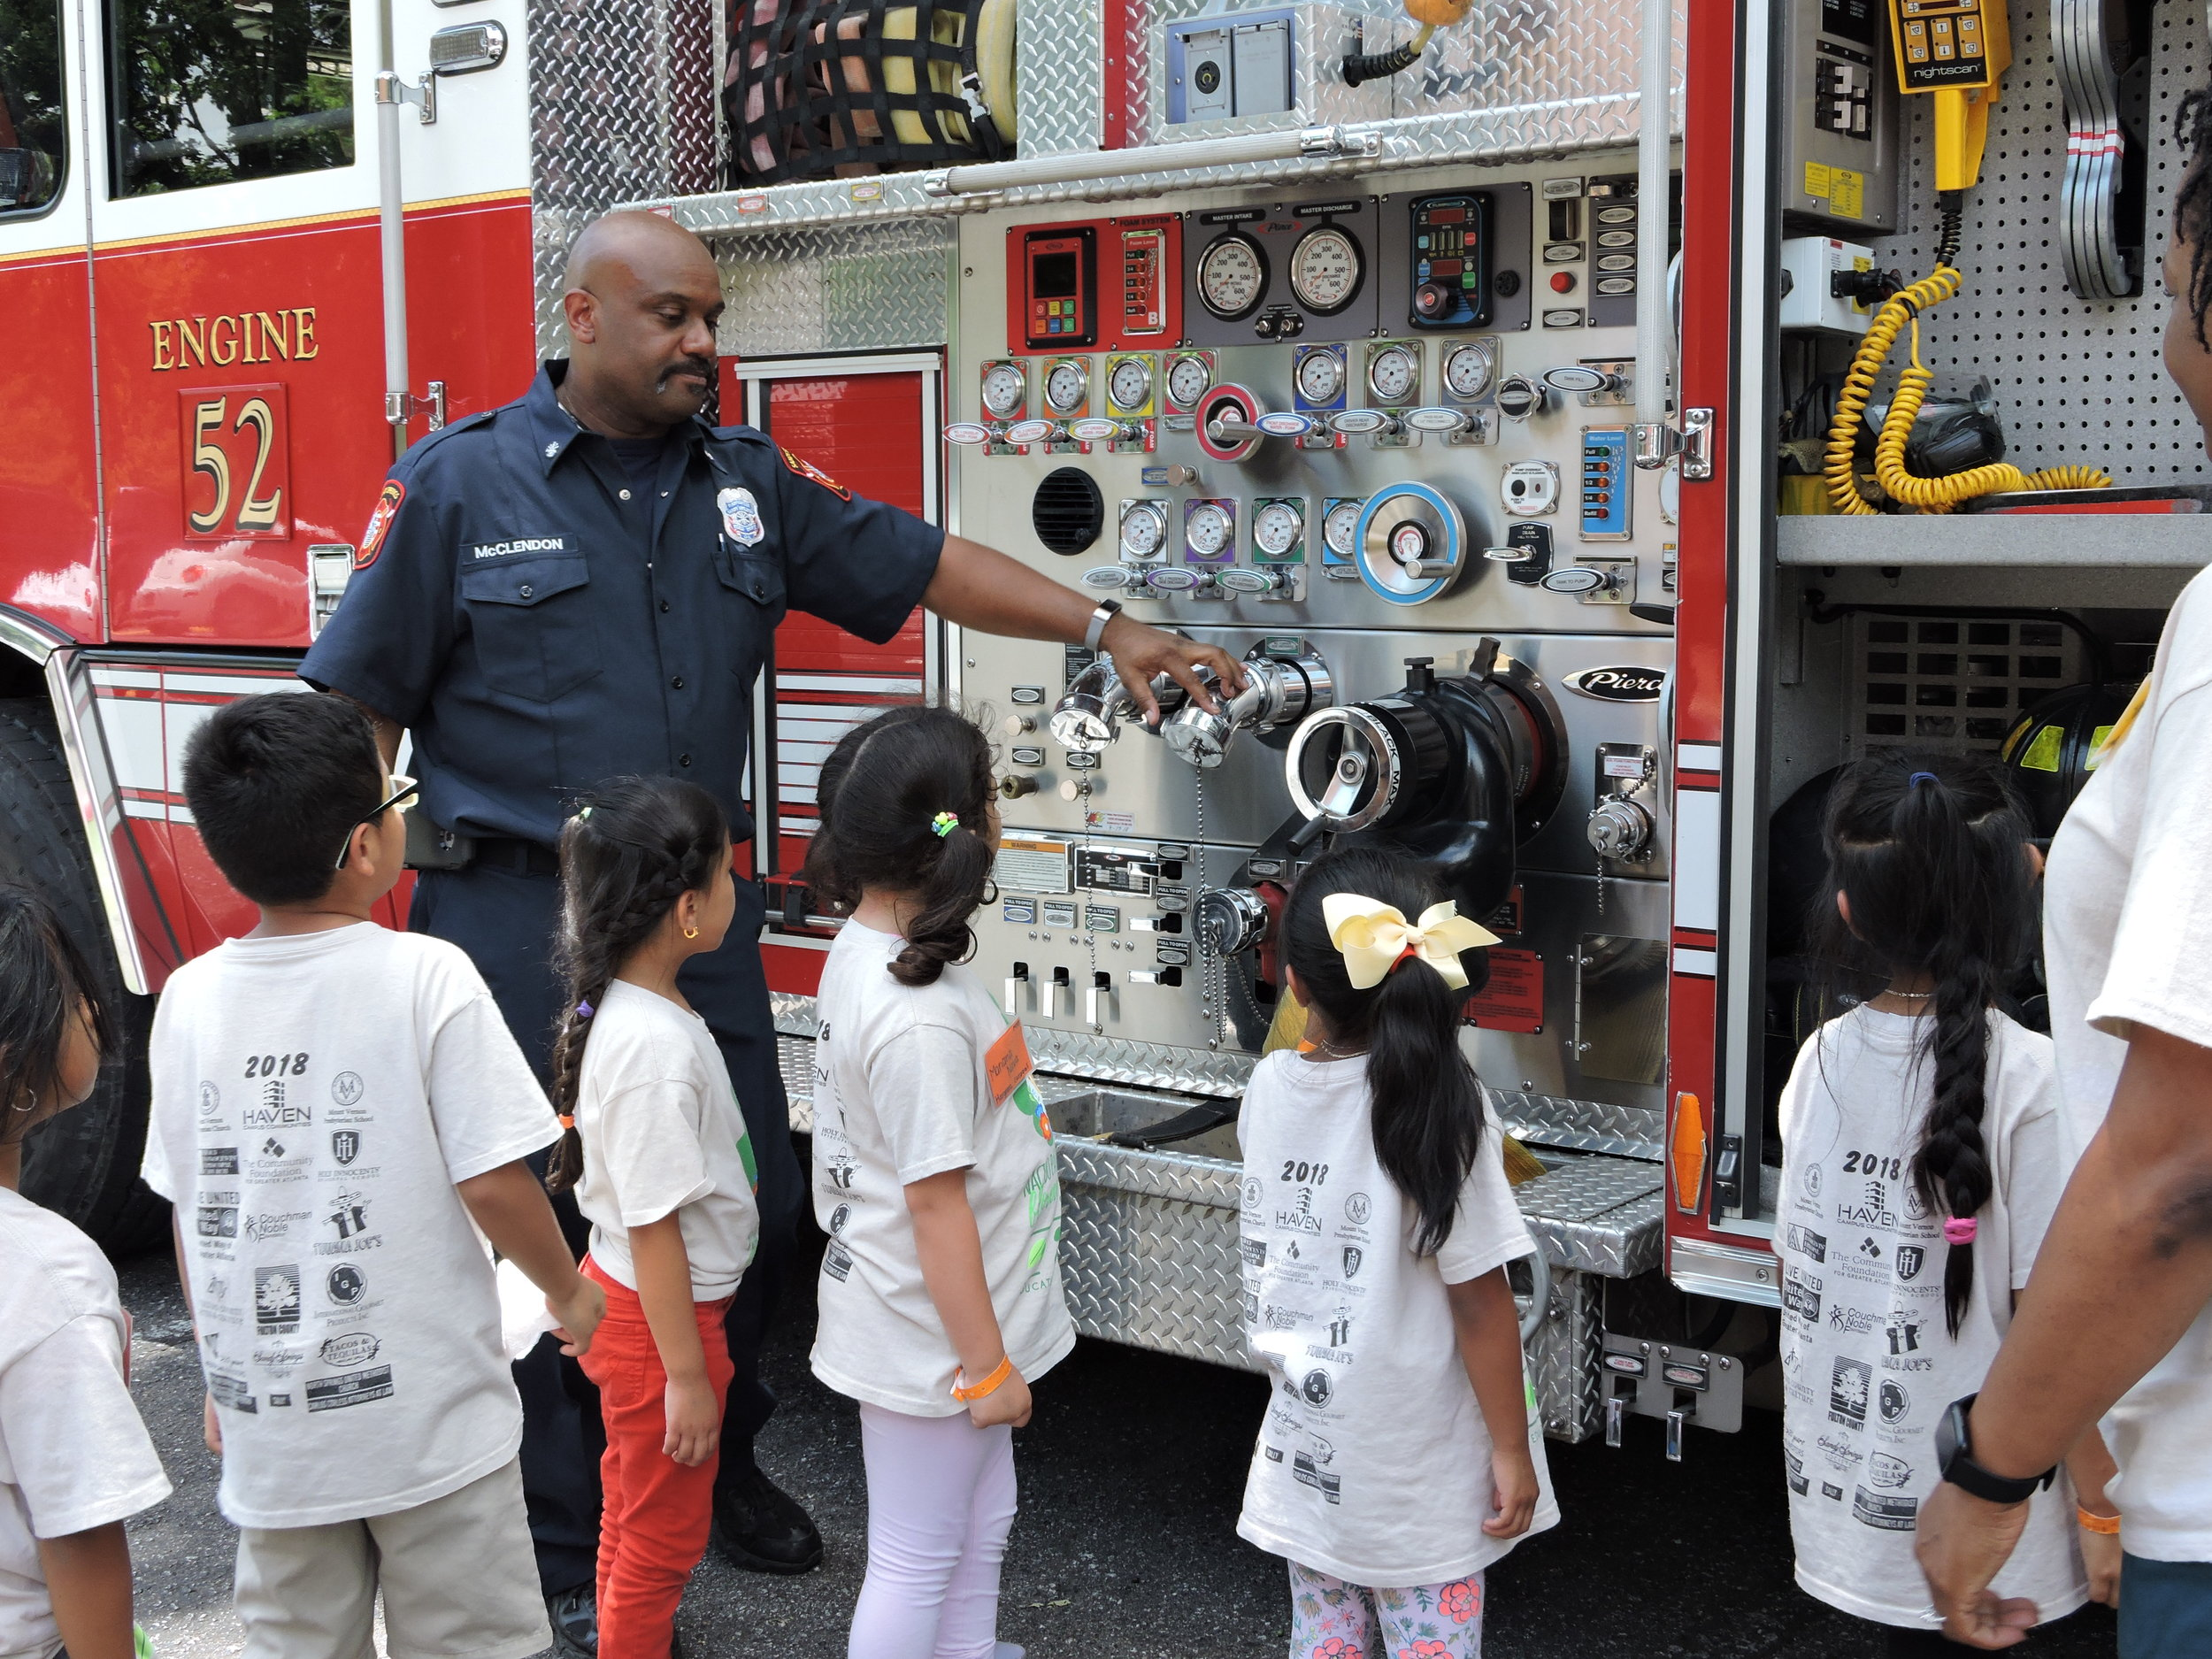 Thank you to  The Sandy Springs Fire Department  for speaking to us about fire safety and teaching us how their equipment works!